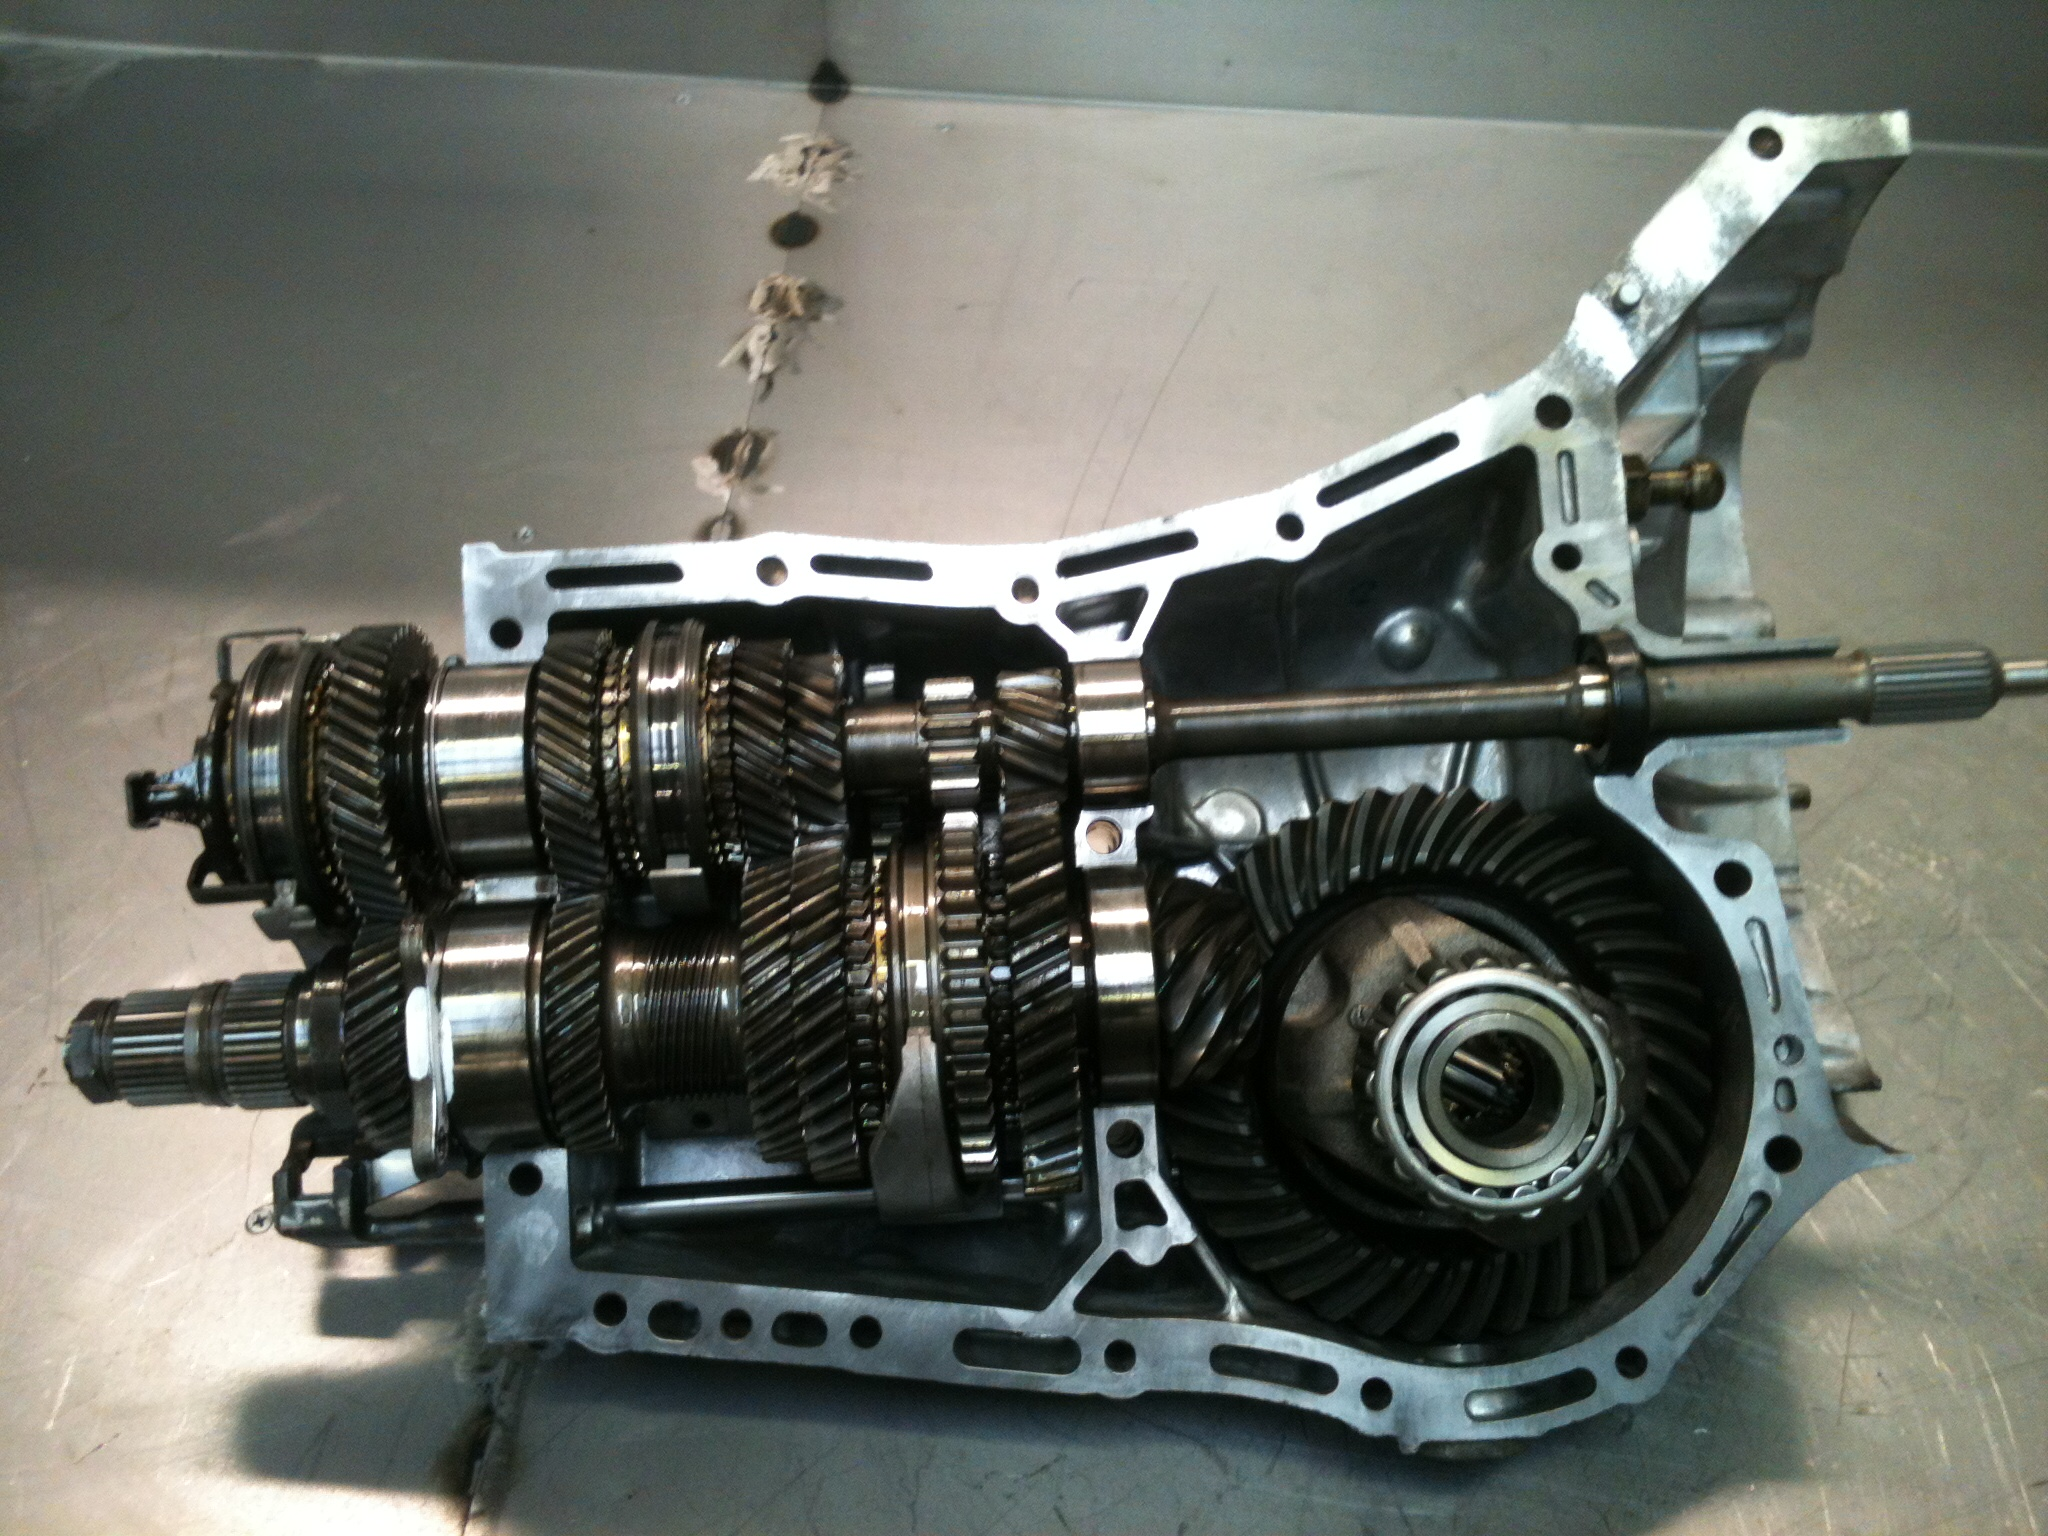 Gearboxrepair Newcastle Gear Box Repair Specialists Newcastle